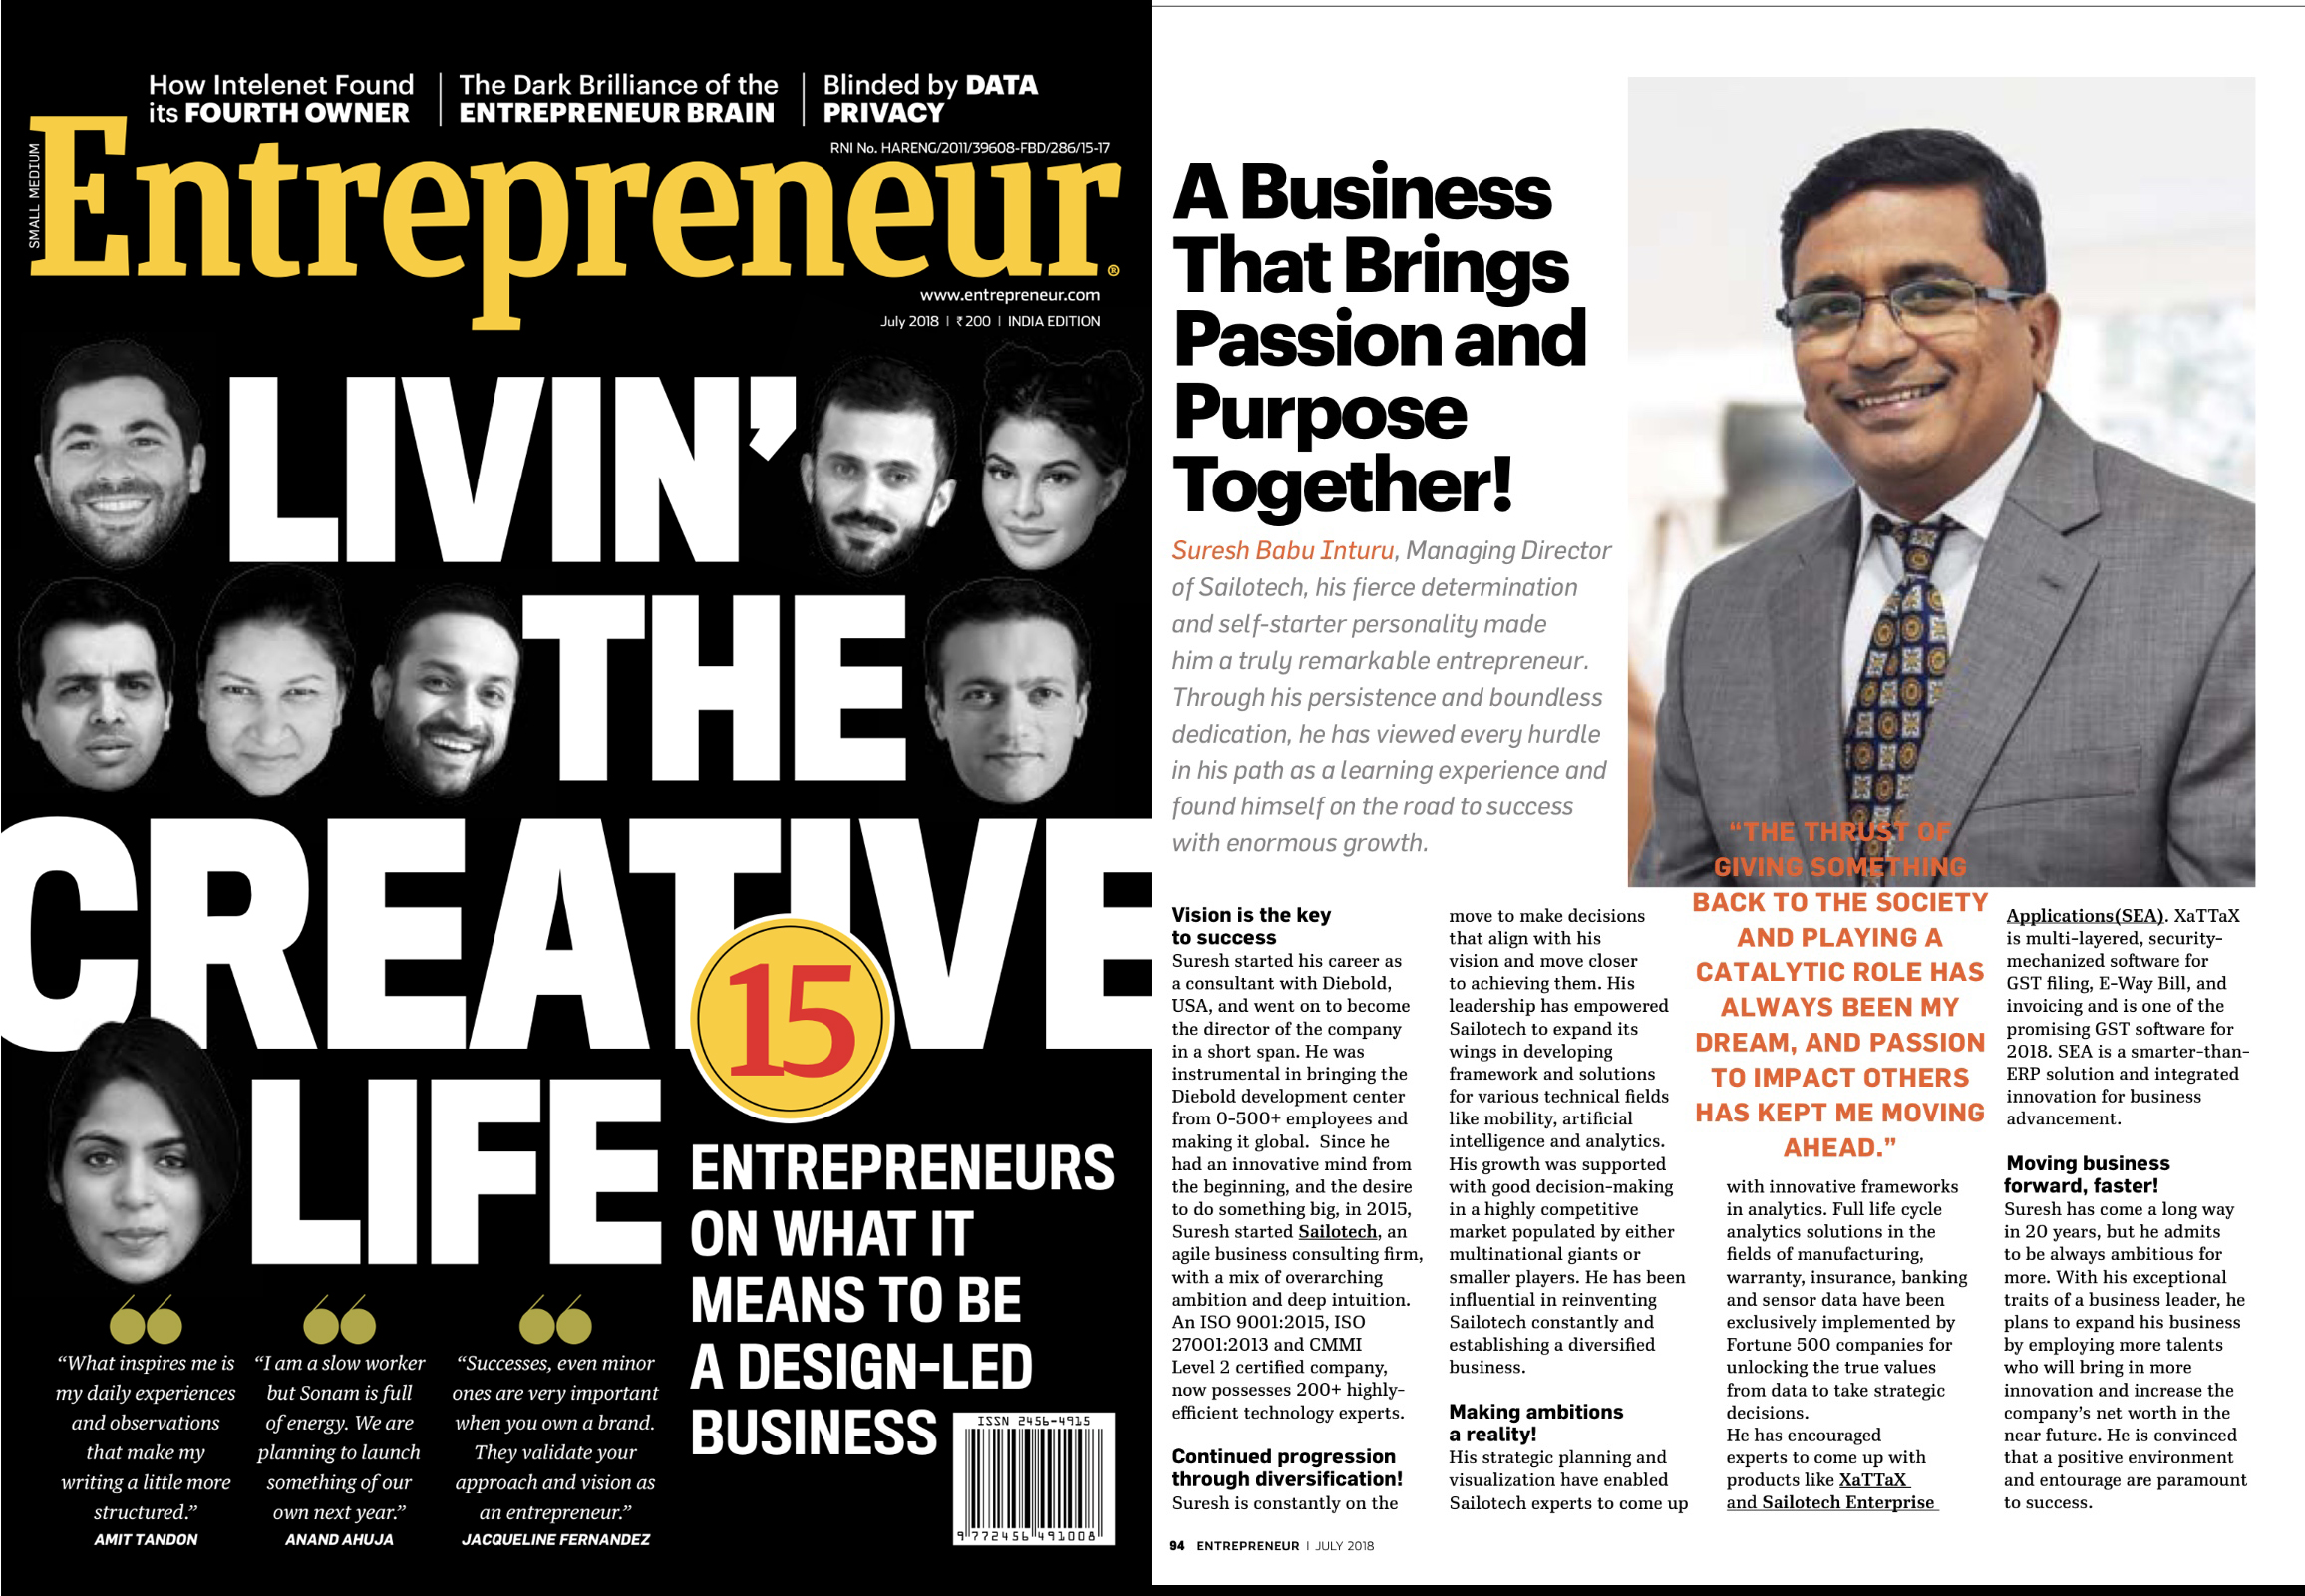 Mr. Suresh Babu, MD of Sailotech featured in 'Entrepreneur'- one of the best business magazines.